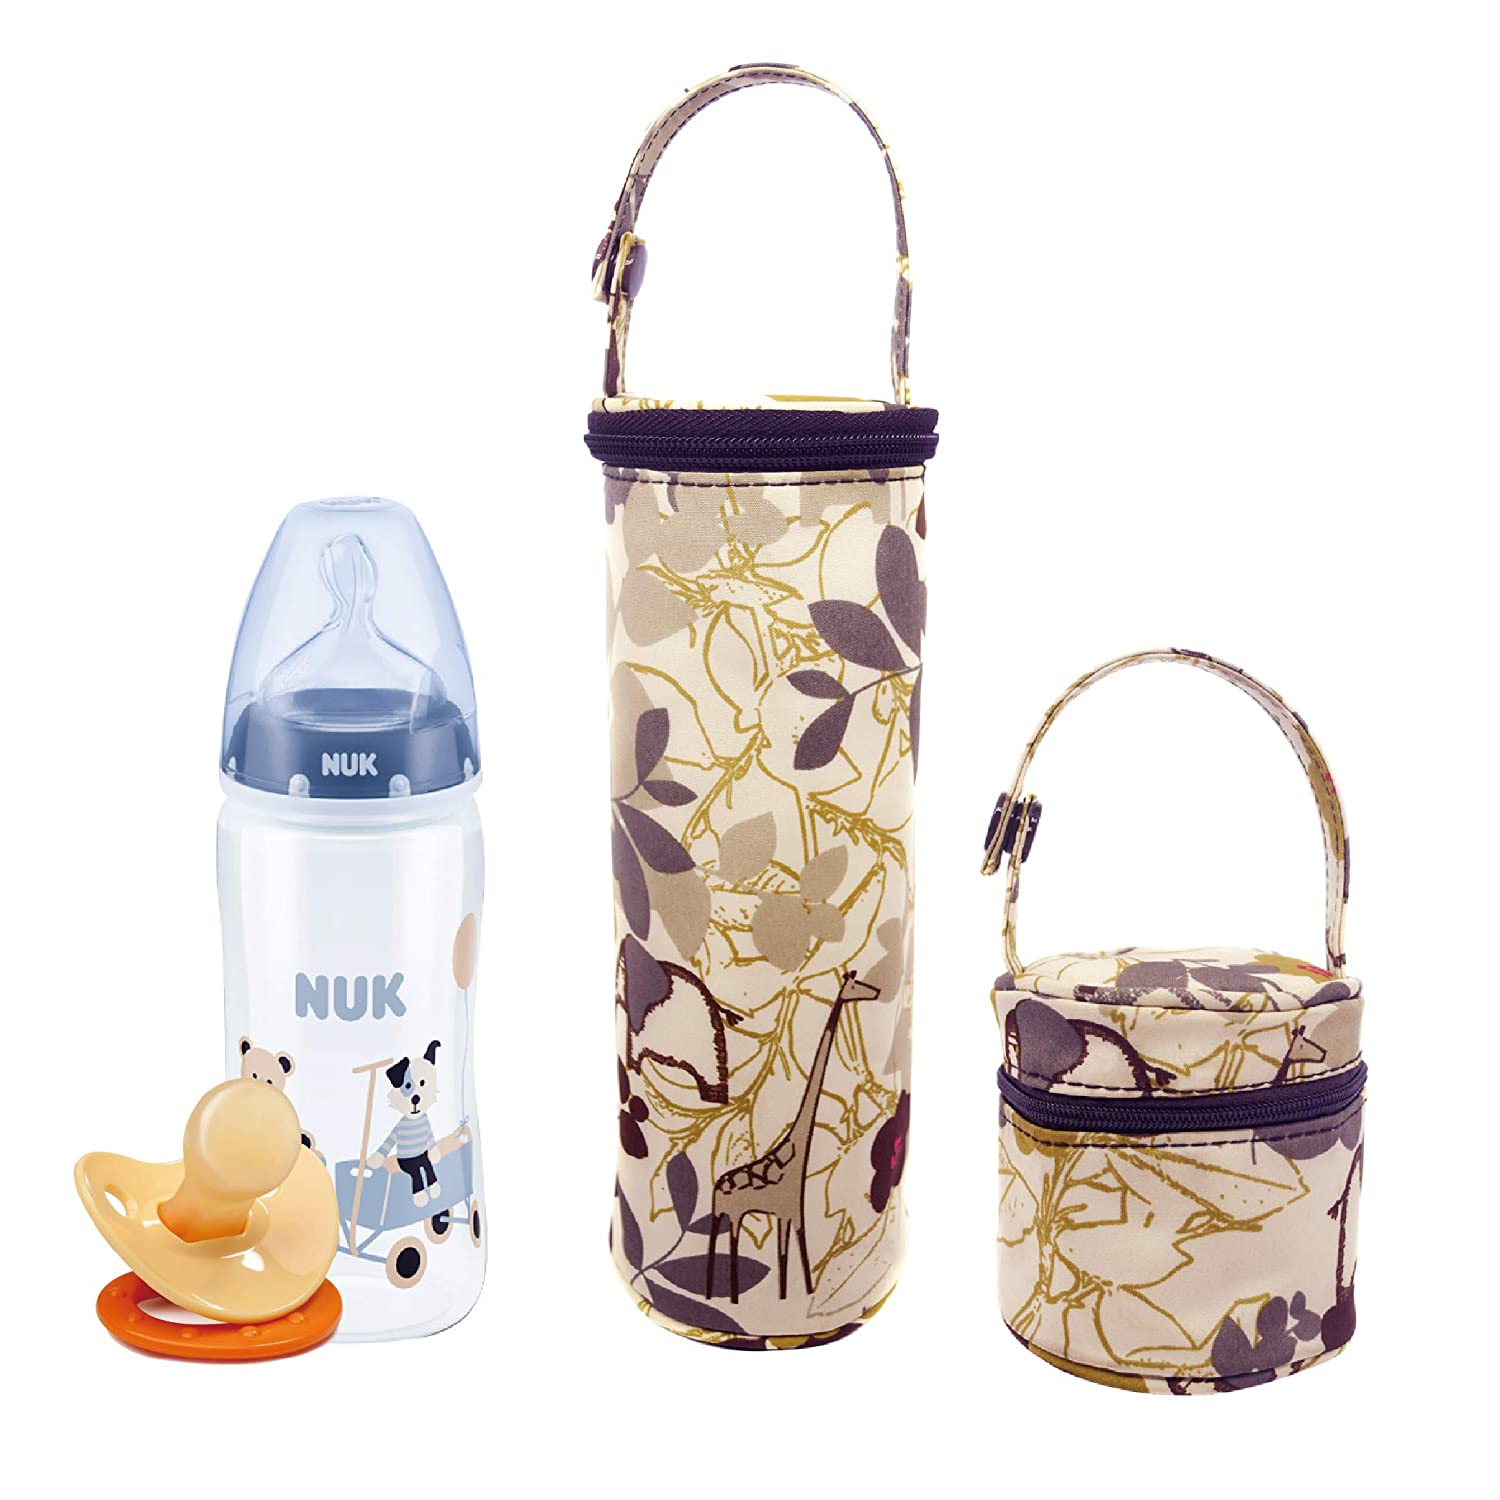 Bellotte Insulated Baby Bottle Bag&Pacifier Pouch (2 Pack) - Travel Carrier, Holder,Tote,Portable Breastmilk Storage Ltd